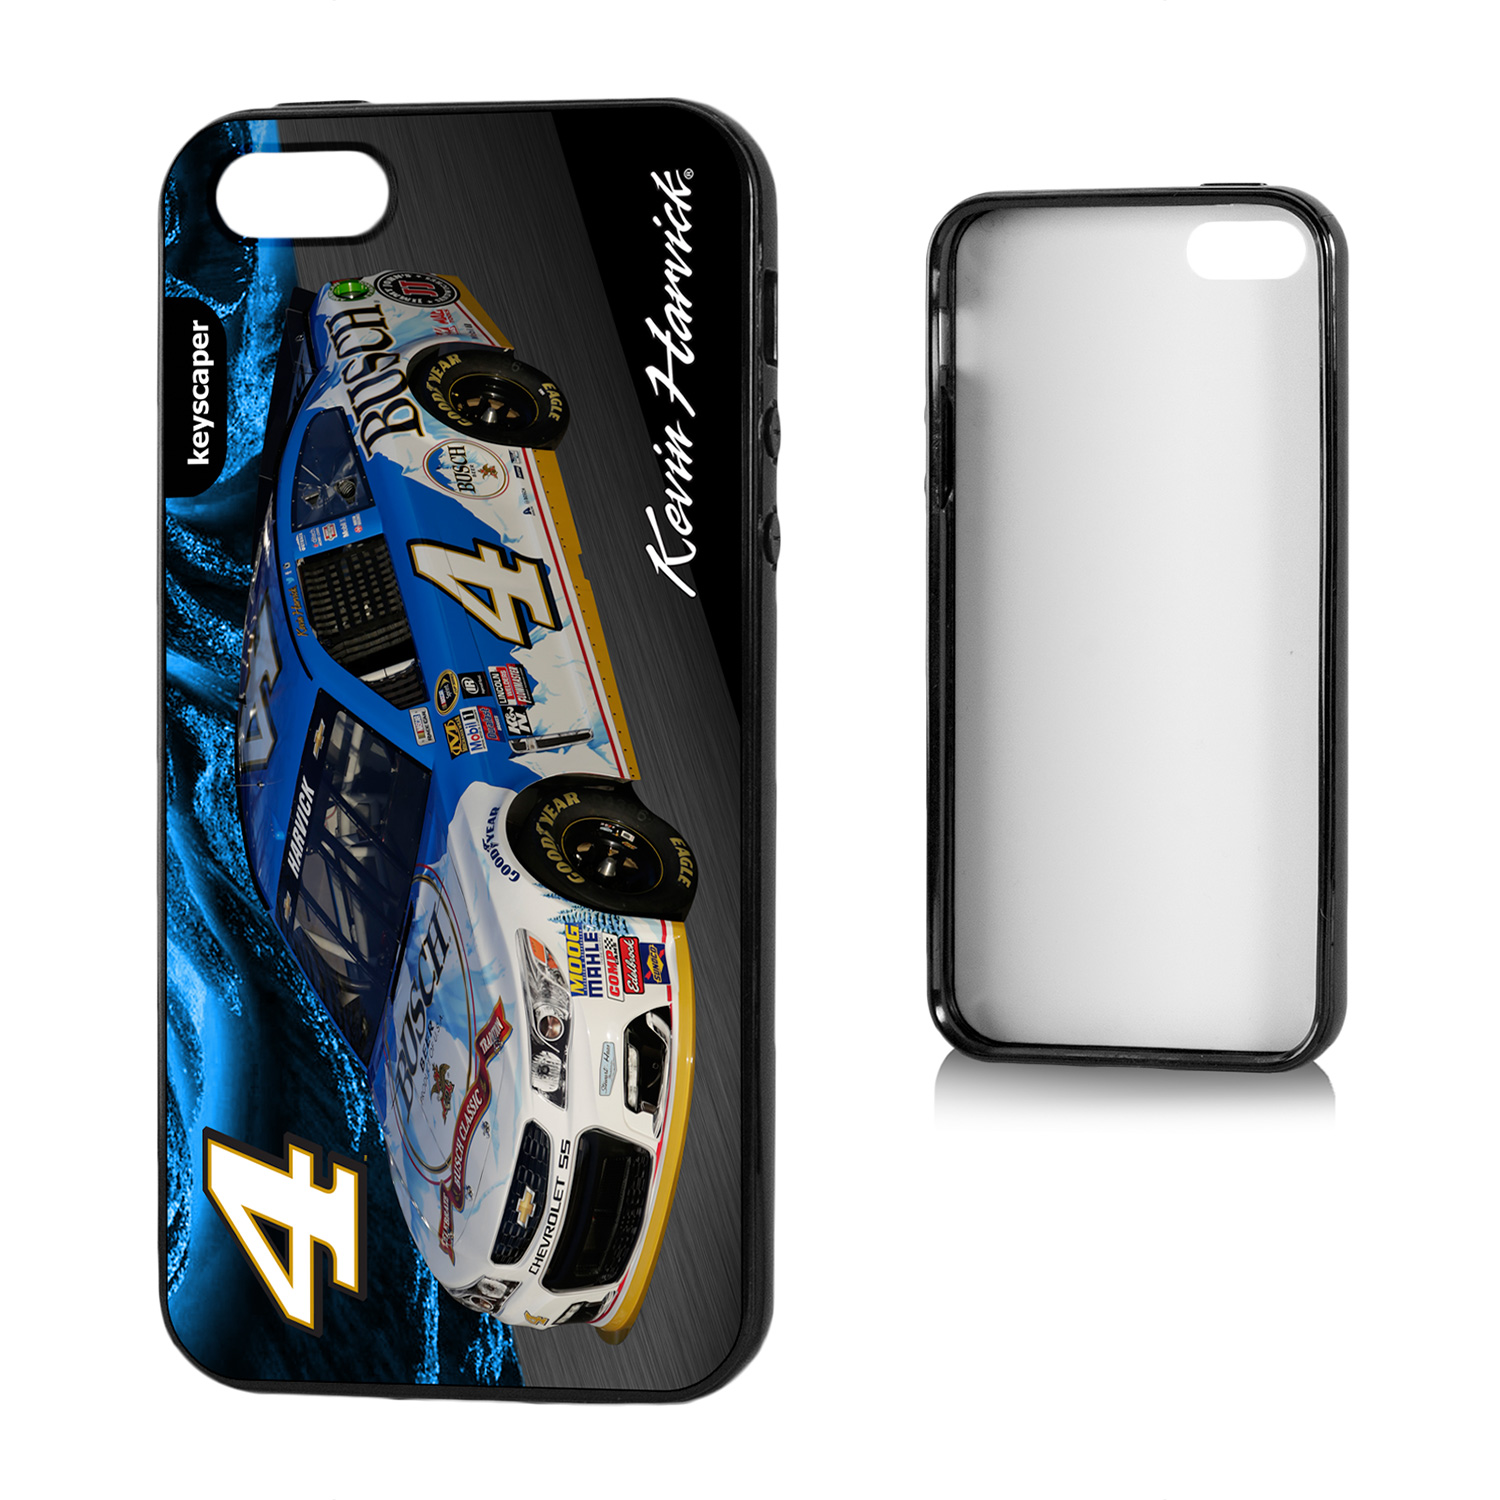 Kevin Harvick 4 Busch Apple iPhone 5/5S Bumper Case by Keyscaper